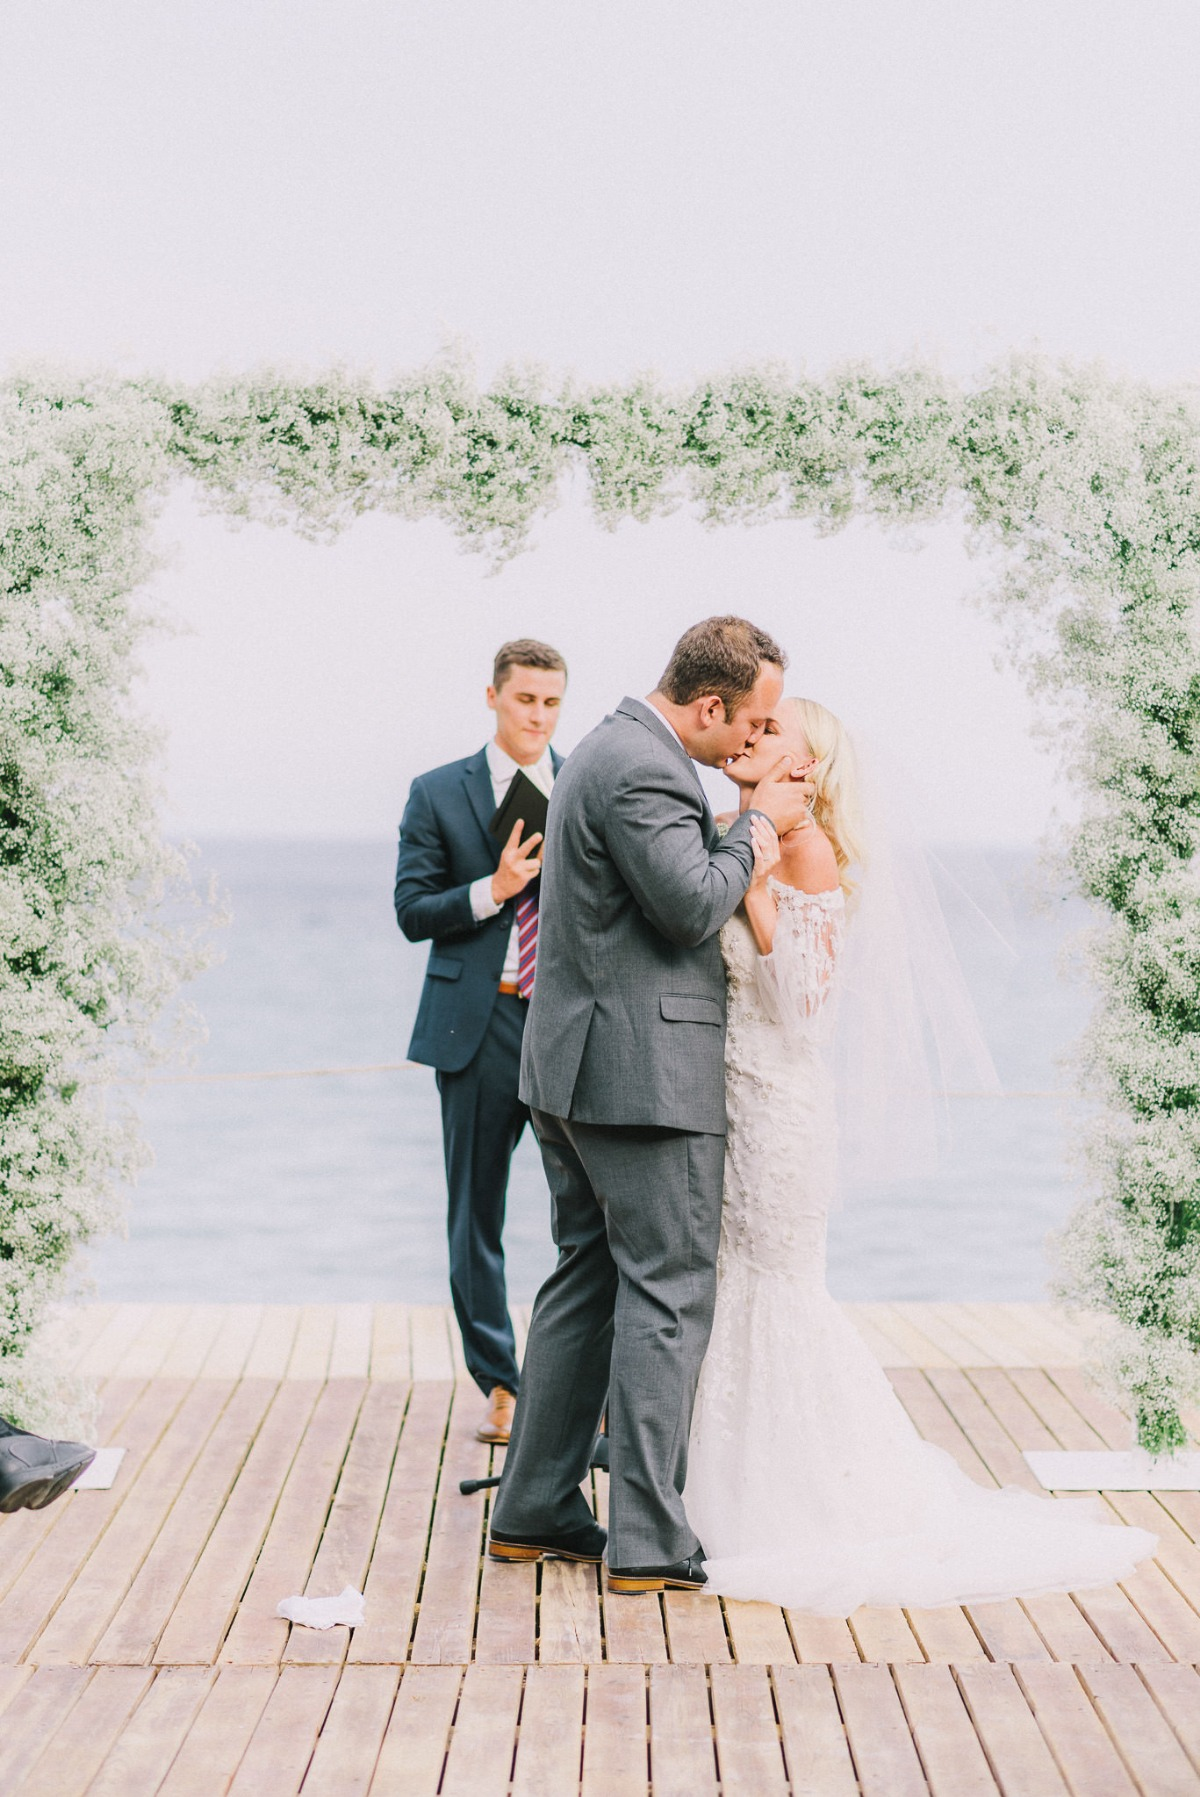 Beautiful seaside ceremony in Greece